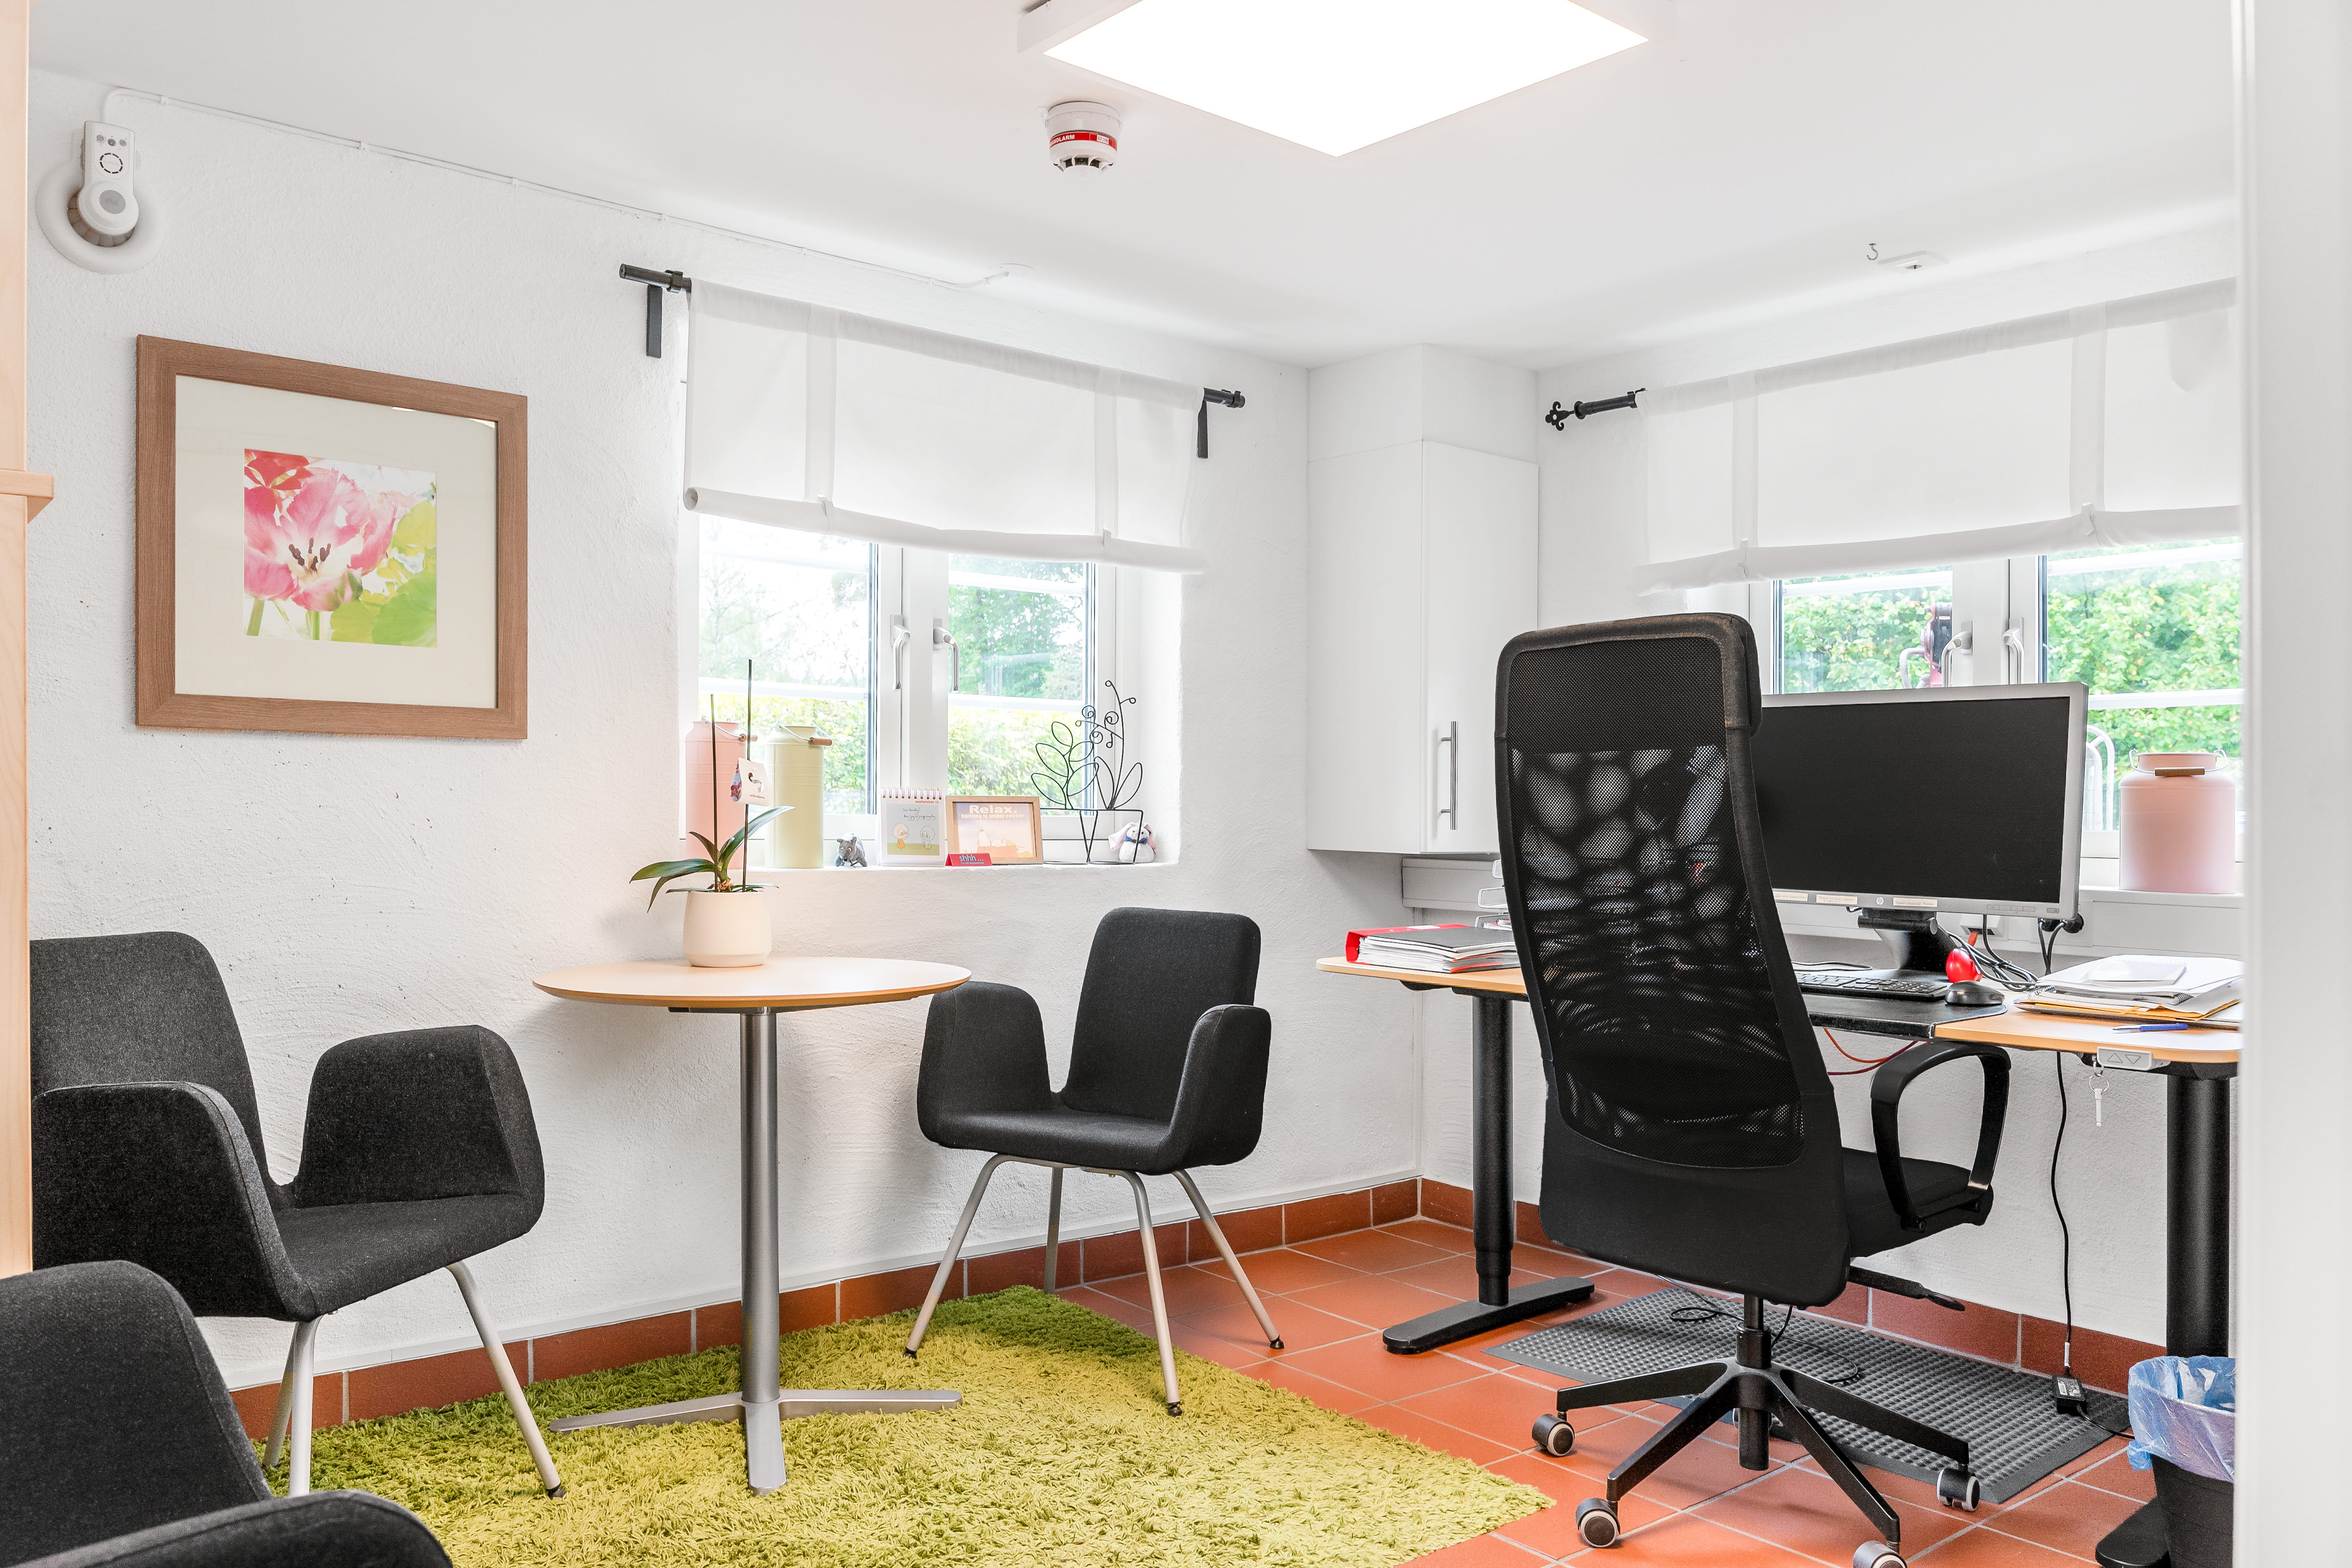 A living area with a desk and chair in a room